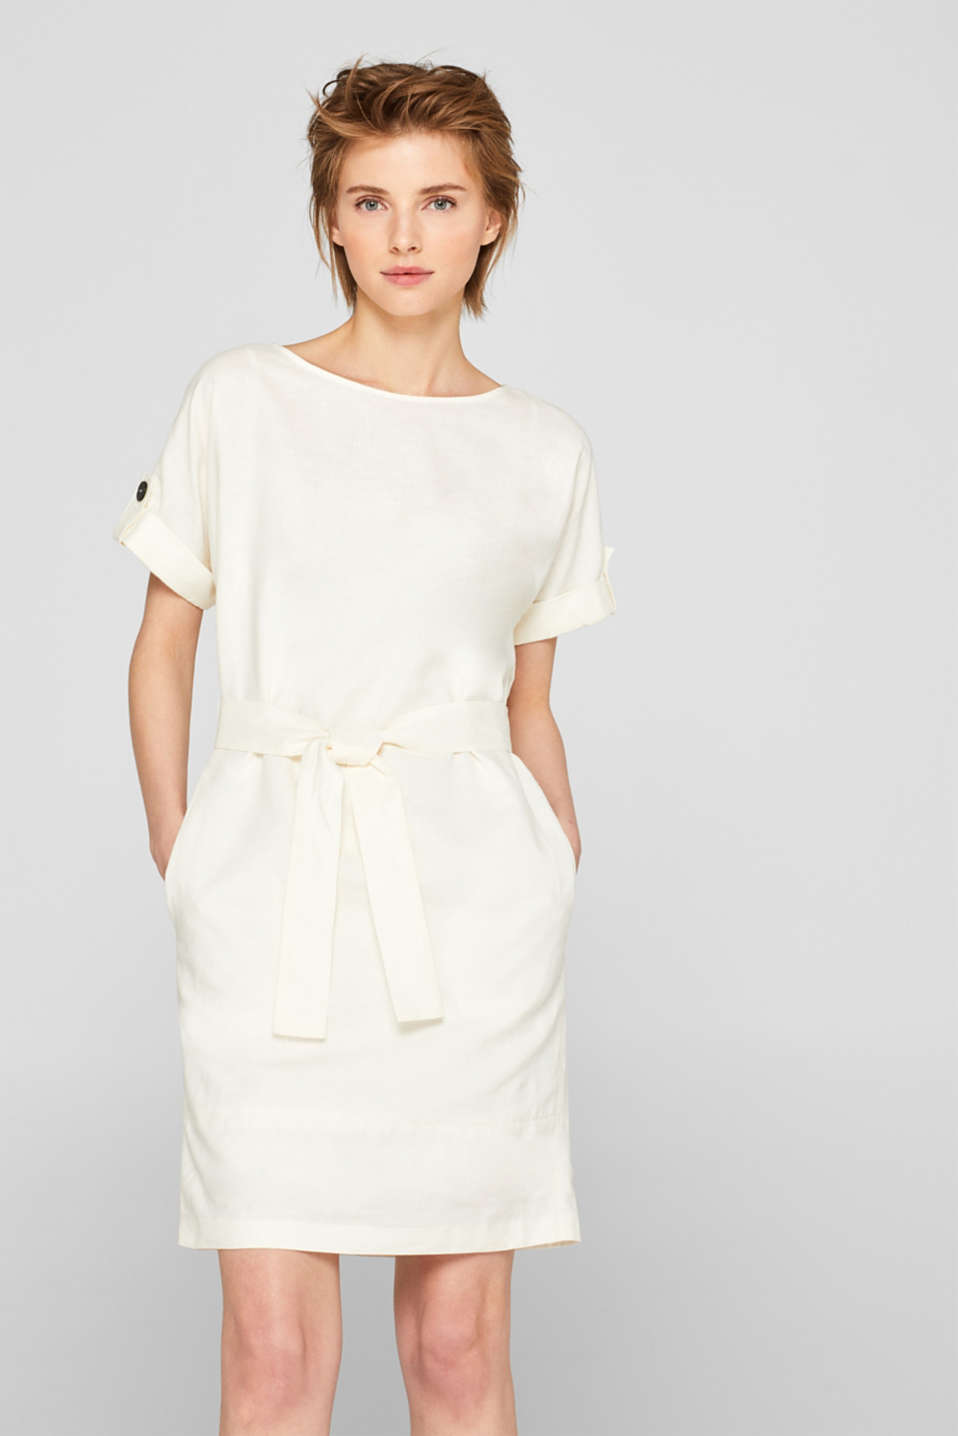 Esprit - Made of blended linen: dress with a button placket